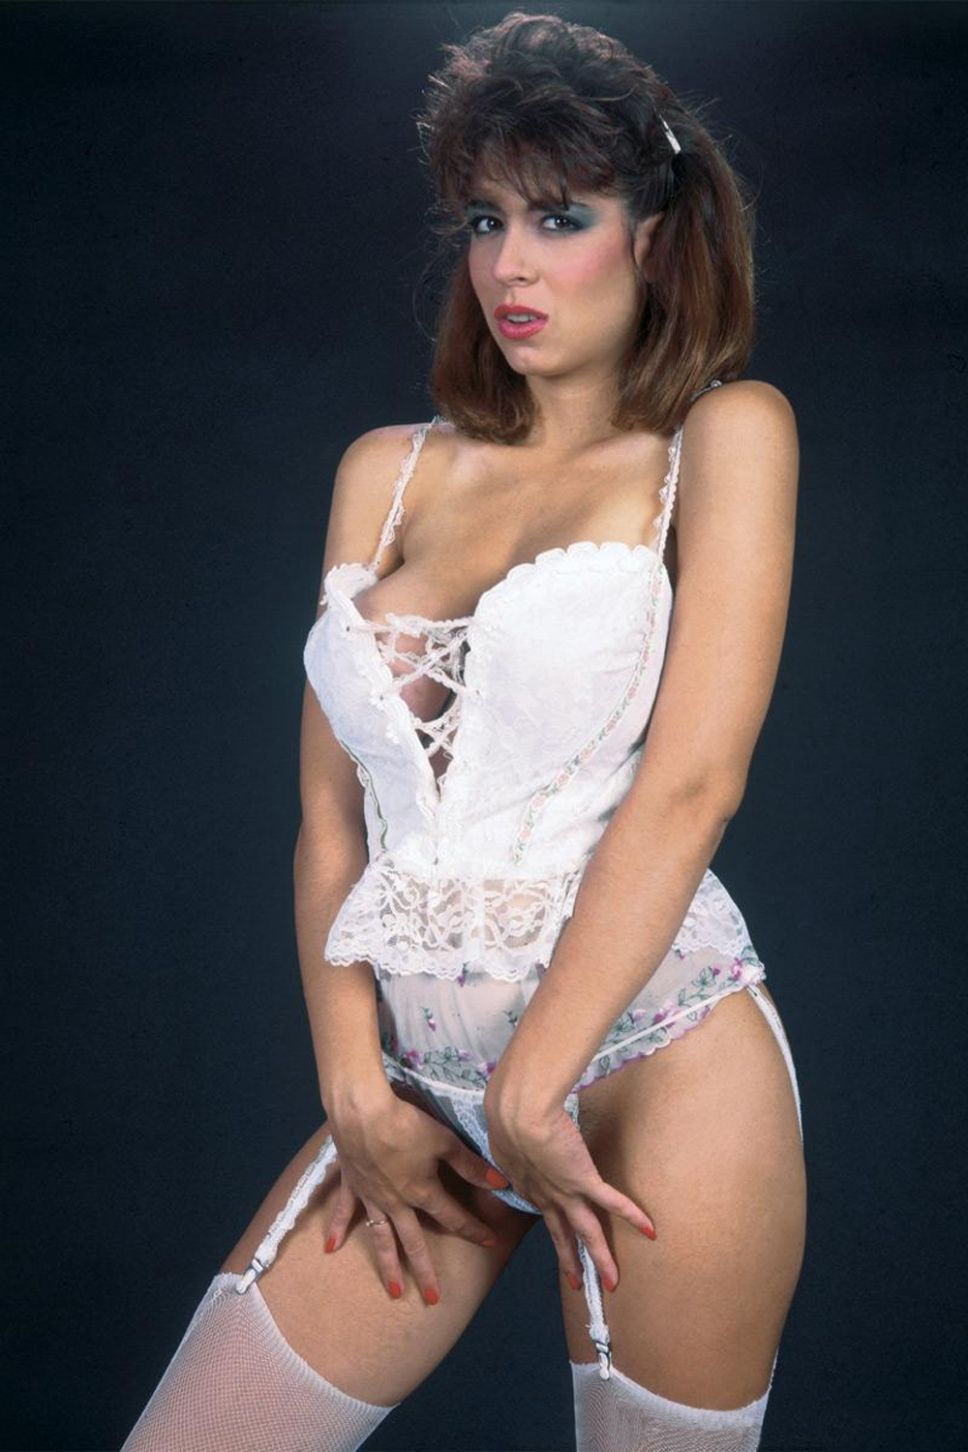 Christy Canyon Hot in White Lingerei